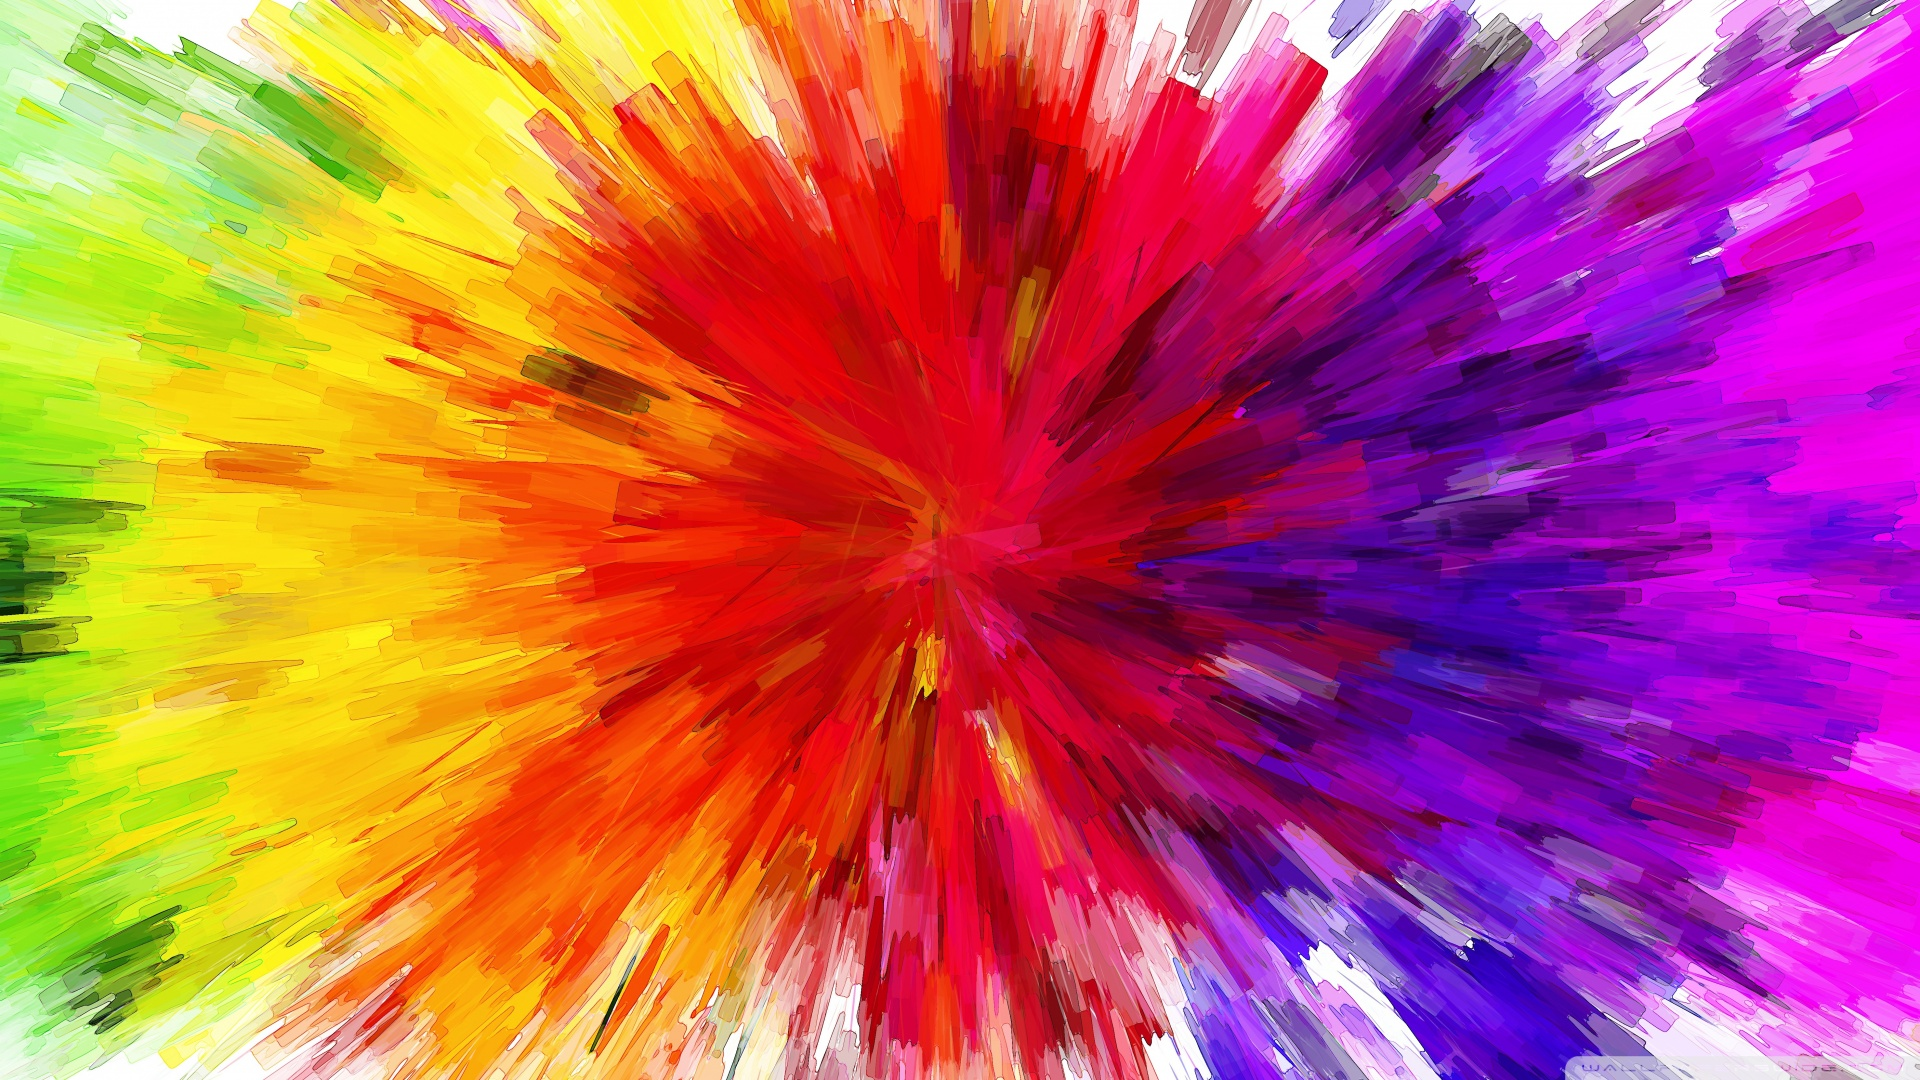 Color Burst Painting 4k Hd Desktop Wallpaper For 4k Ultra Hd Tv